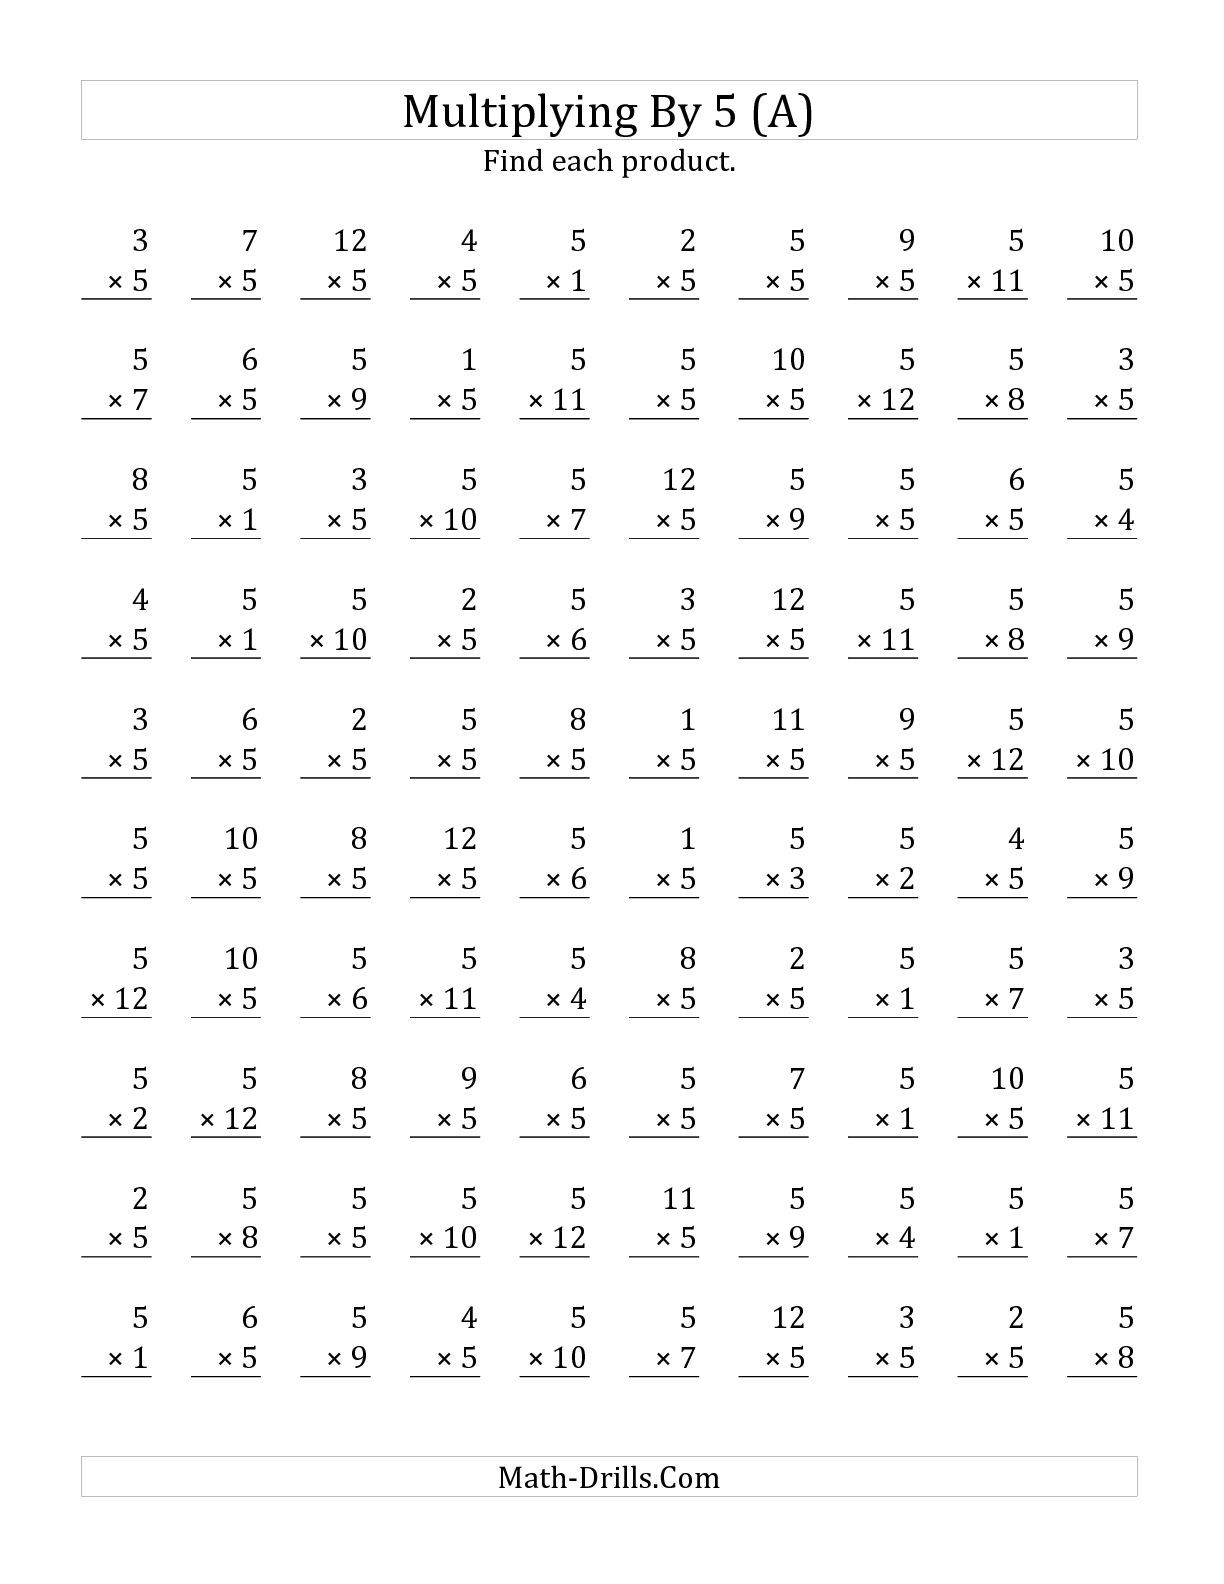 Worksheets Multiplication 1-12 the multiplying 1 to 12 by 5 a math worksheet from multiplication worksheet